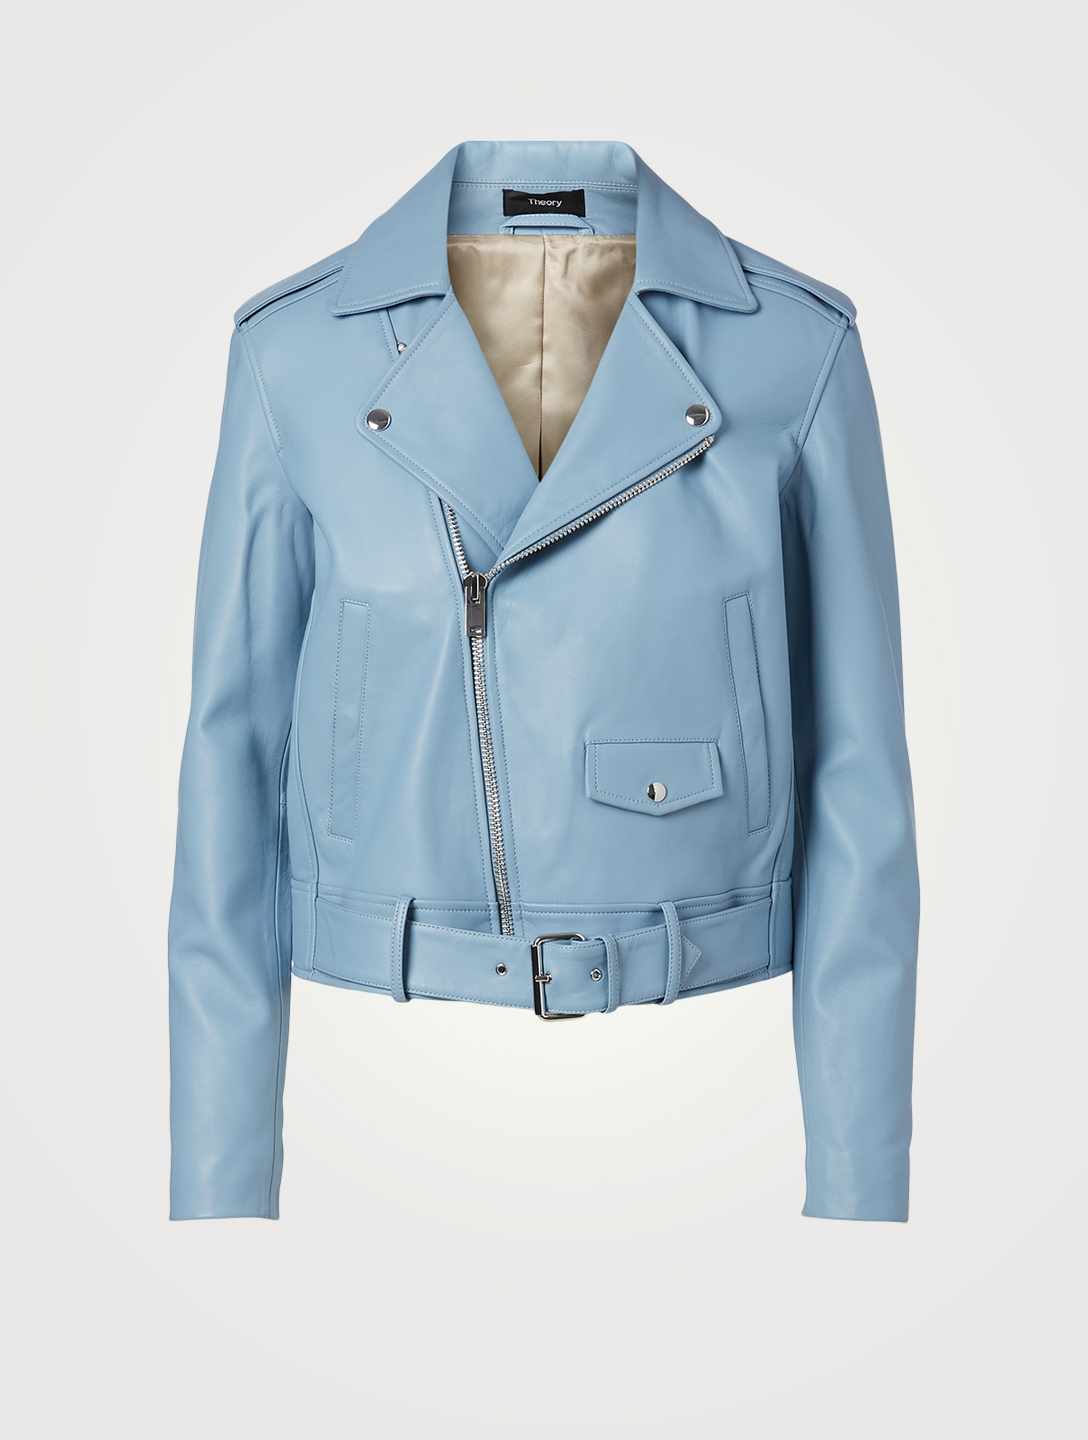 THEORY Leather Moto Jacket Women's Blue